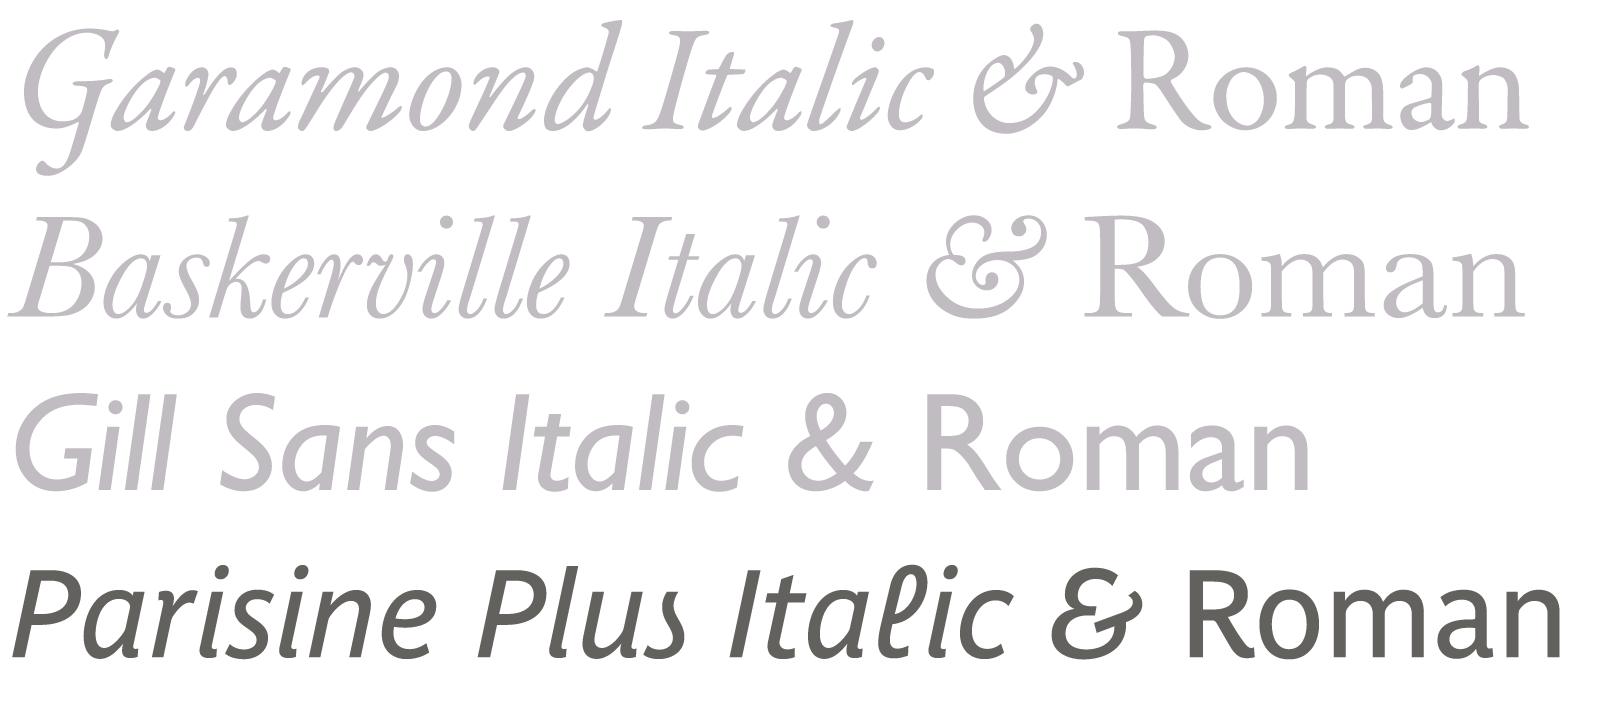 Garamond, Baskerville and Gill Sans